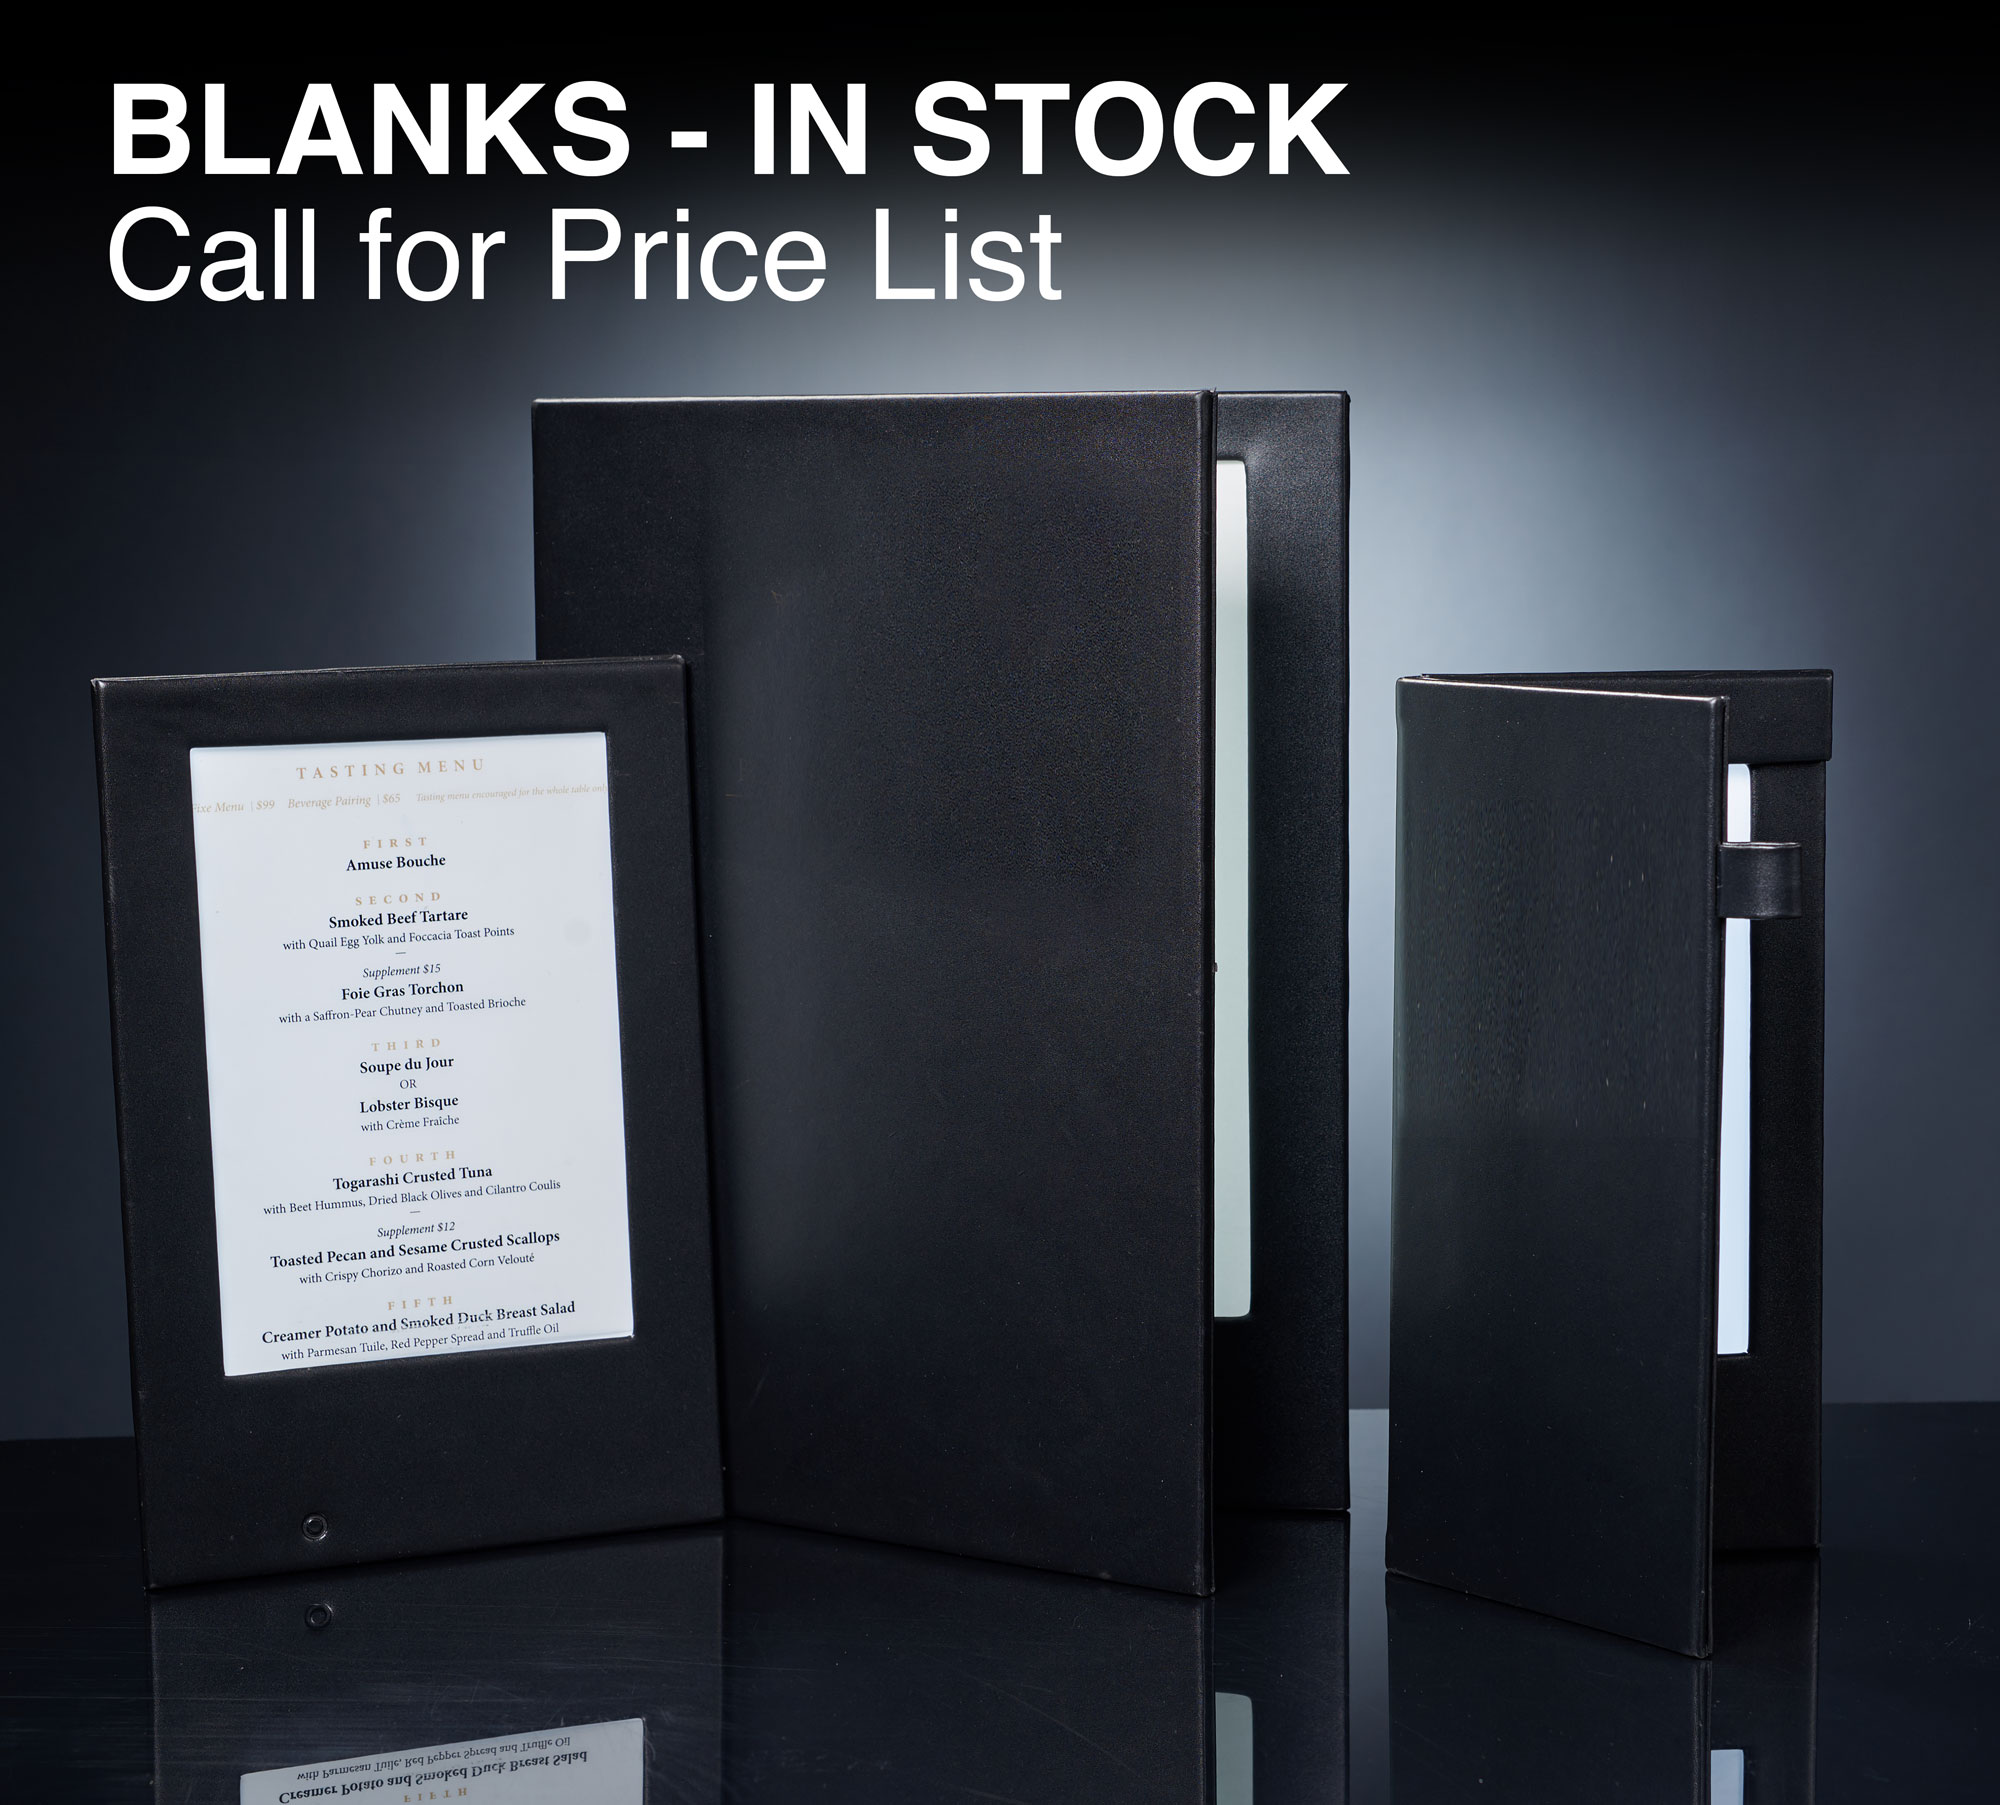 Blank Menu Covers - In Stock - Free Shipping!